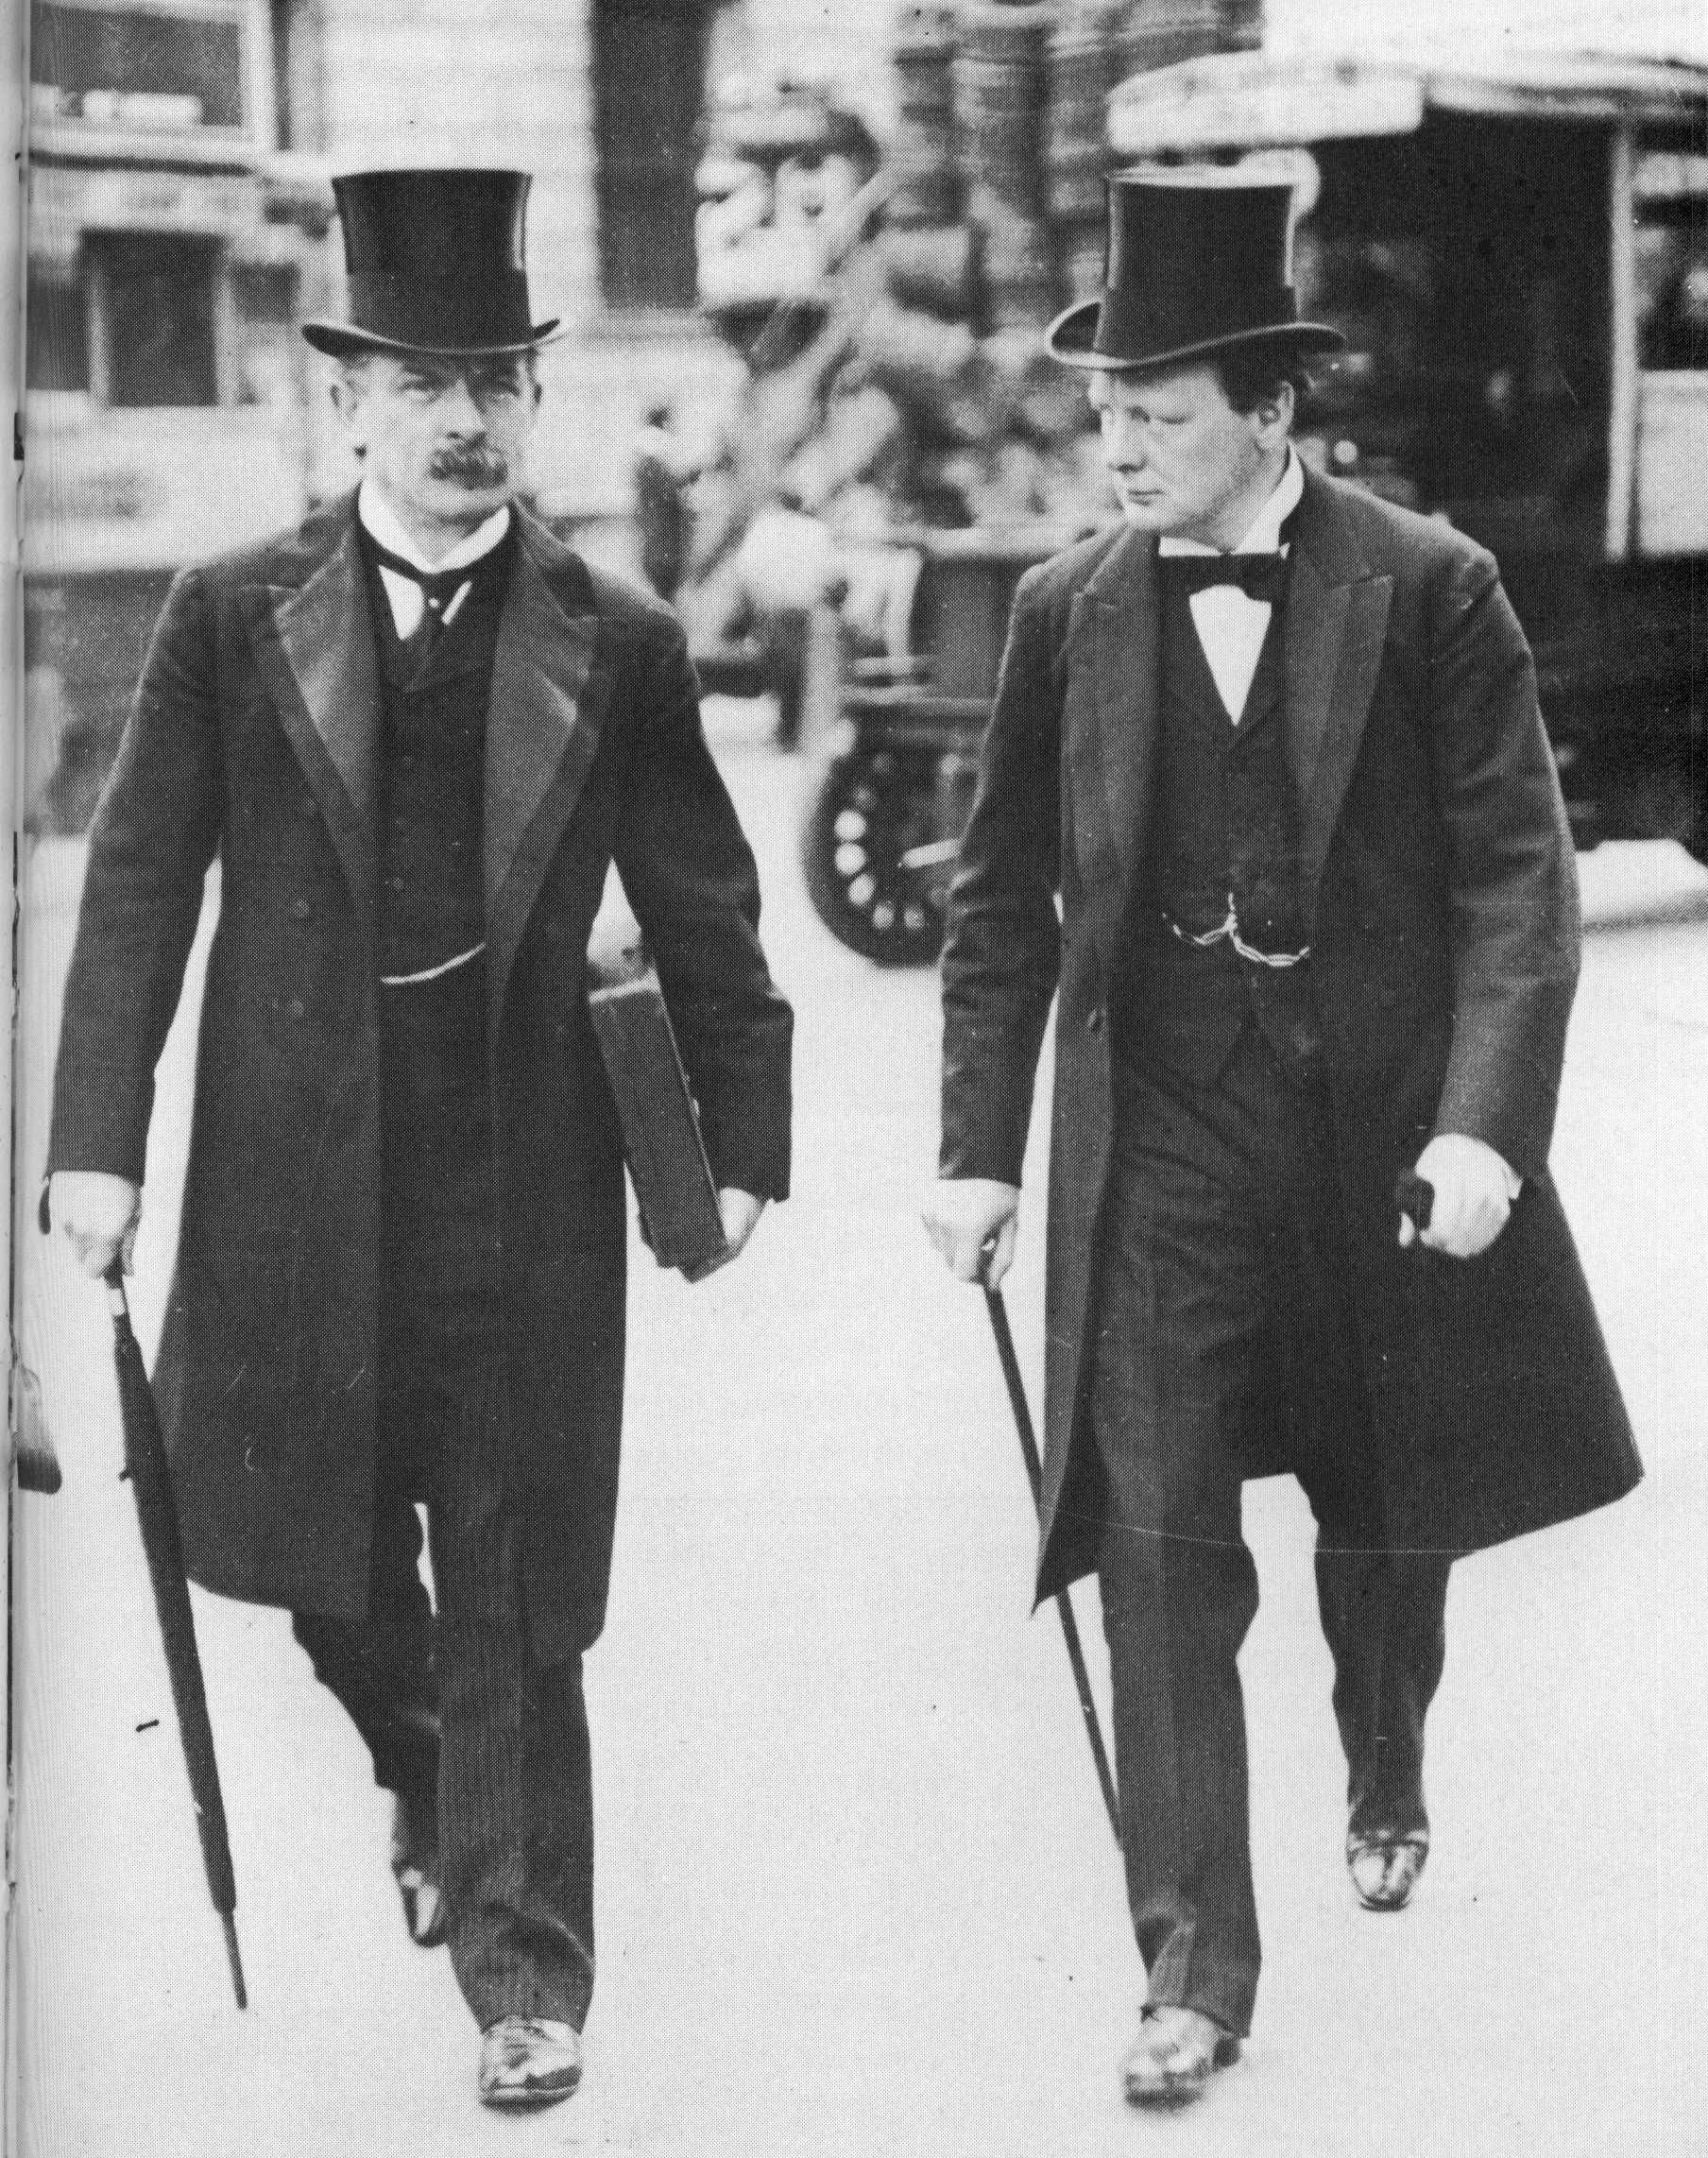 533a66aaa81 British formal dress  David Lloyd George (left) and Winston Churchill wear  frock coats and top hats